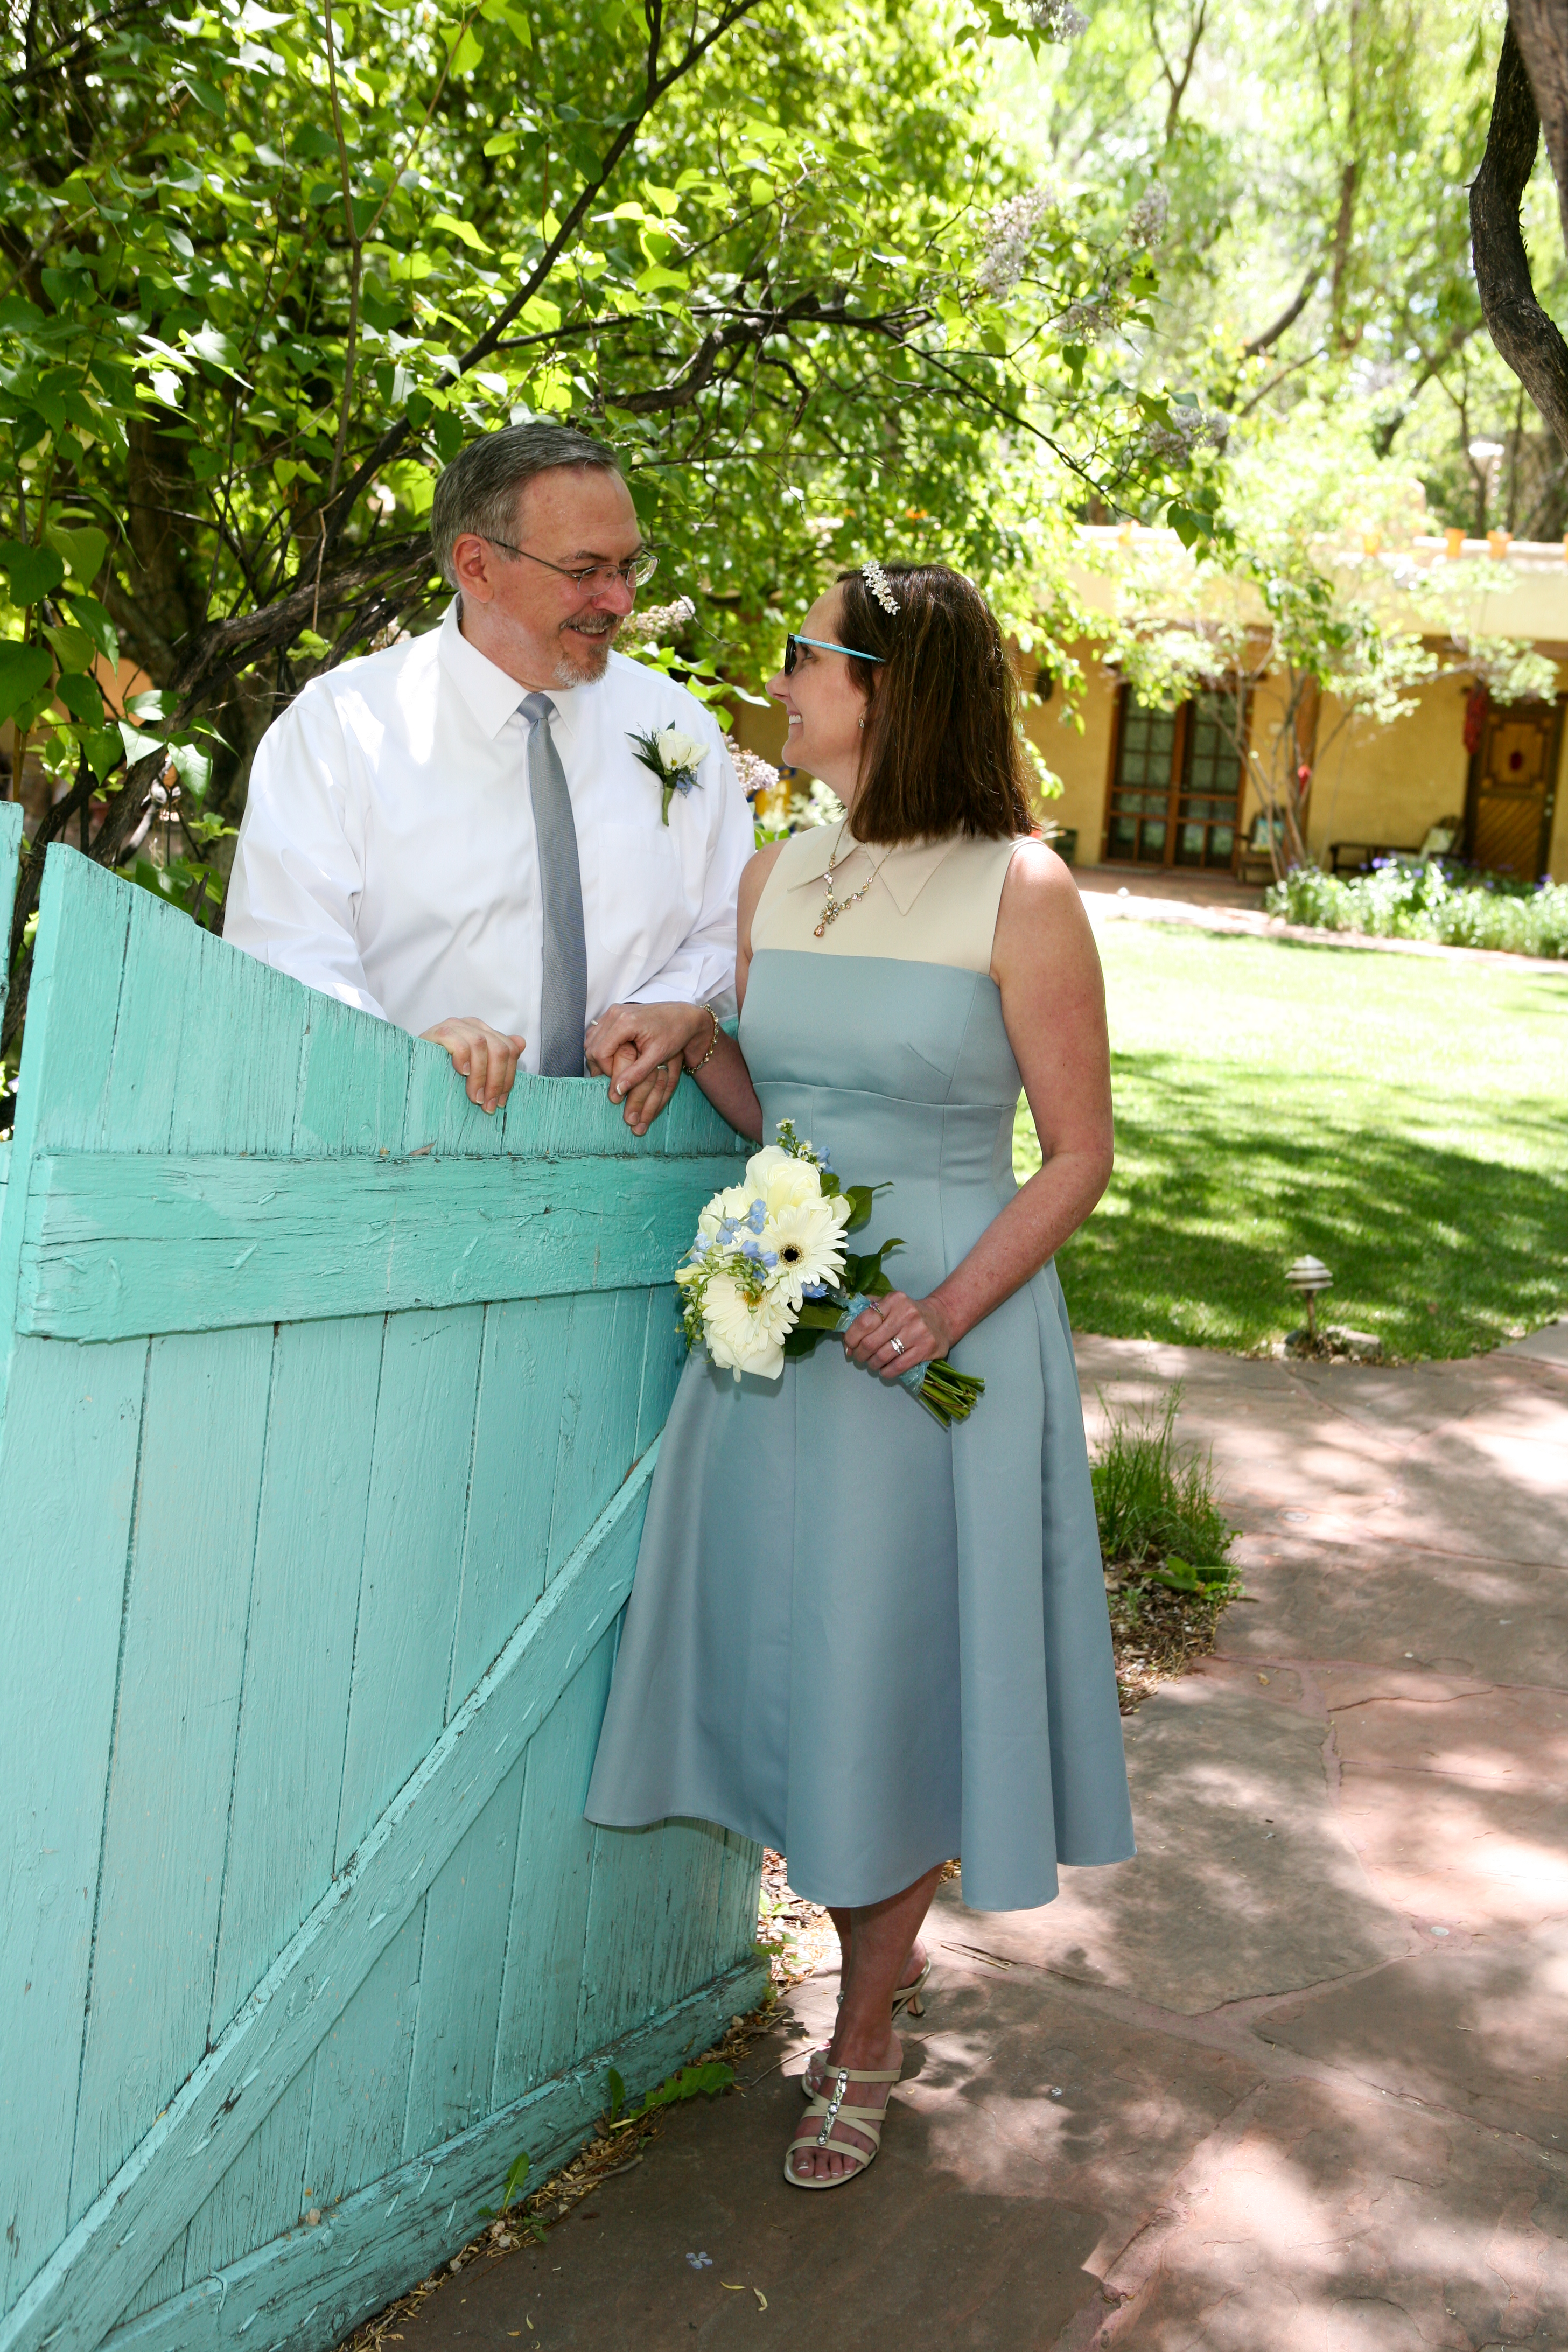 Vow Renewal Ceremony in Taos, NM